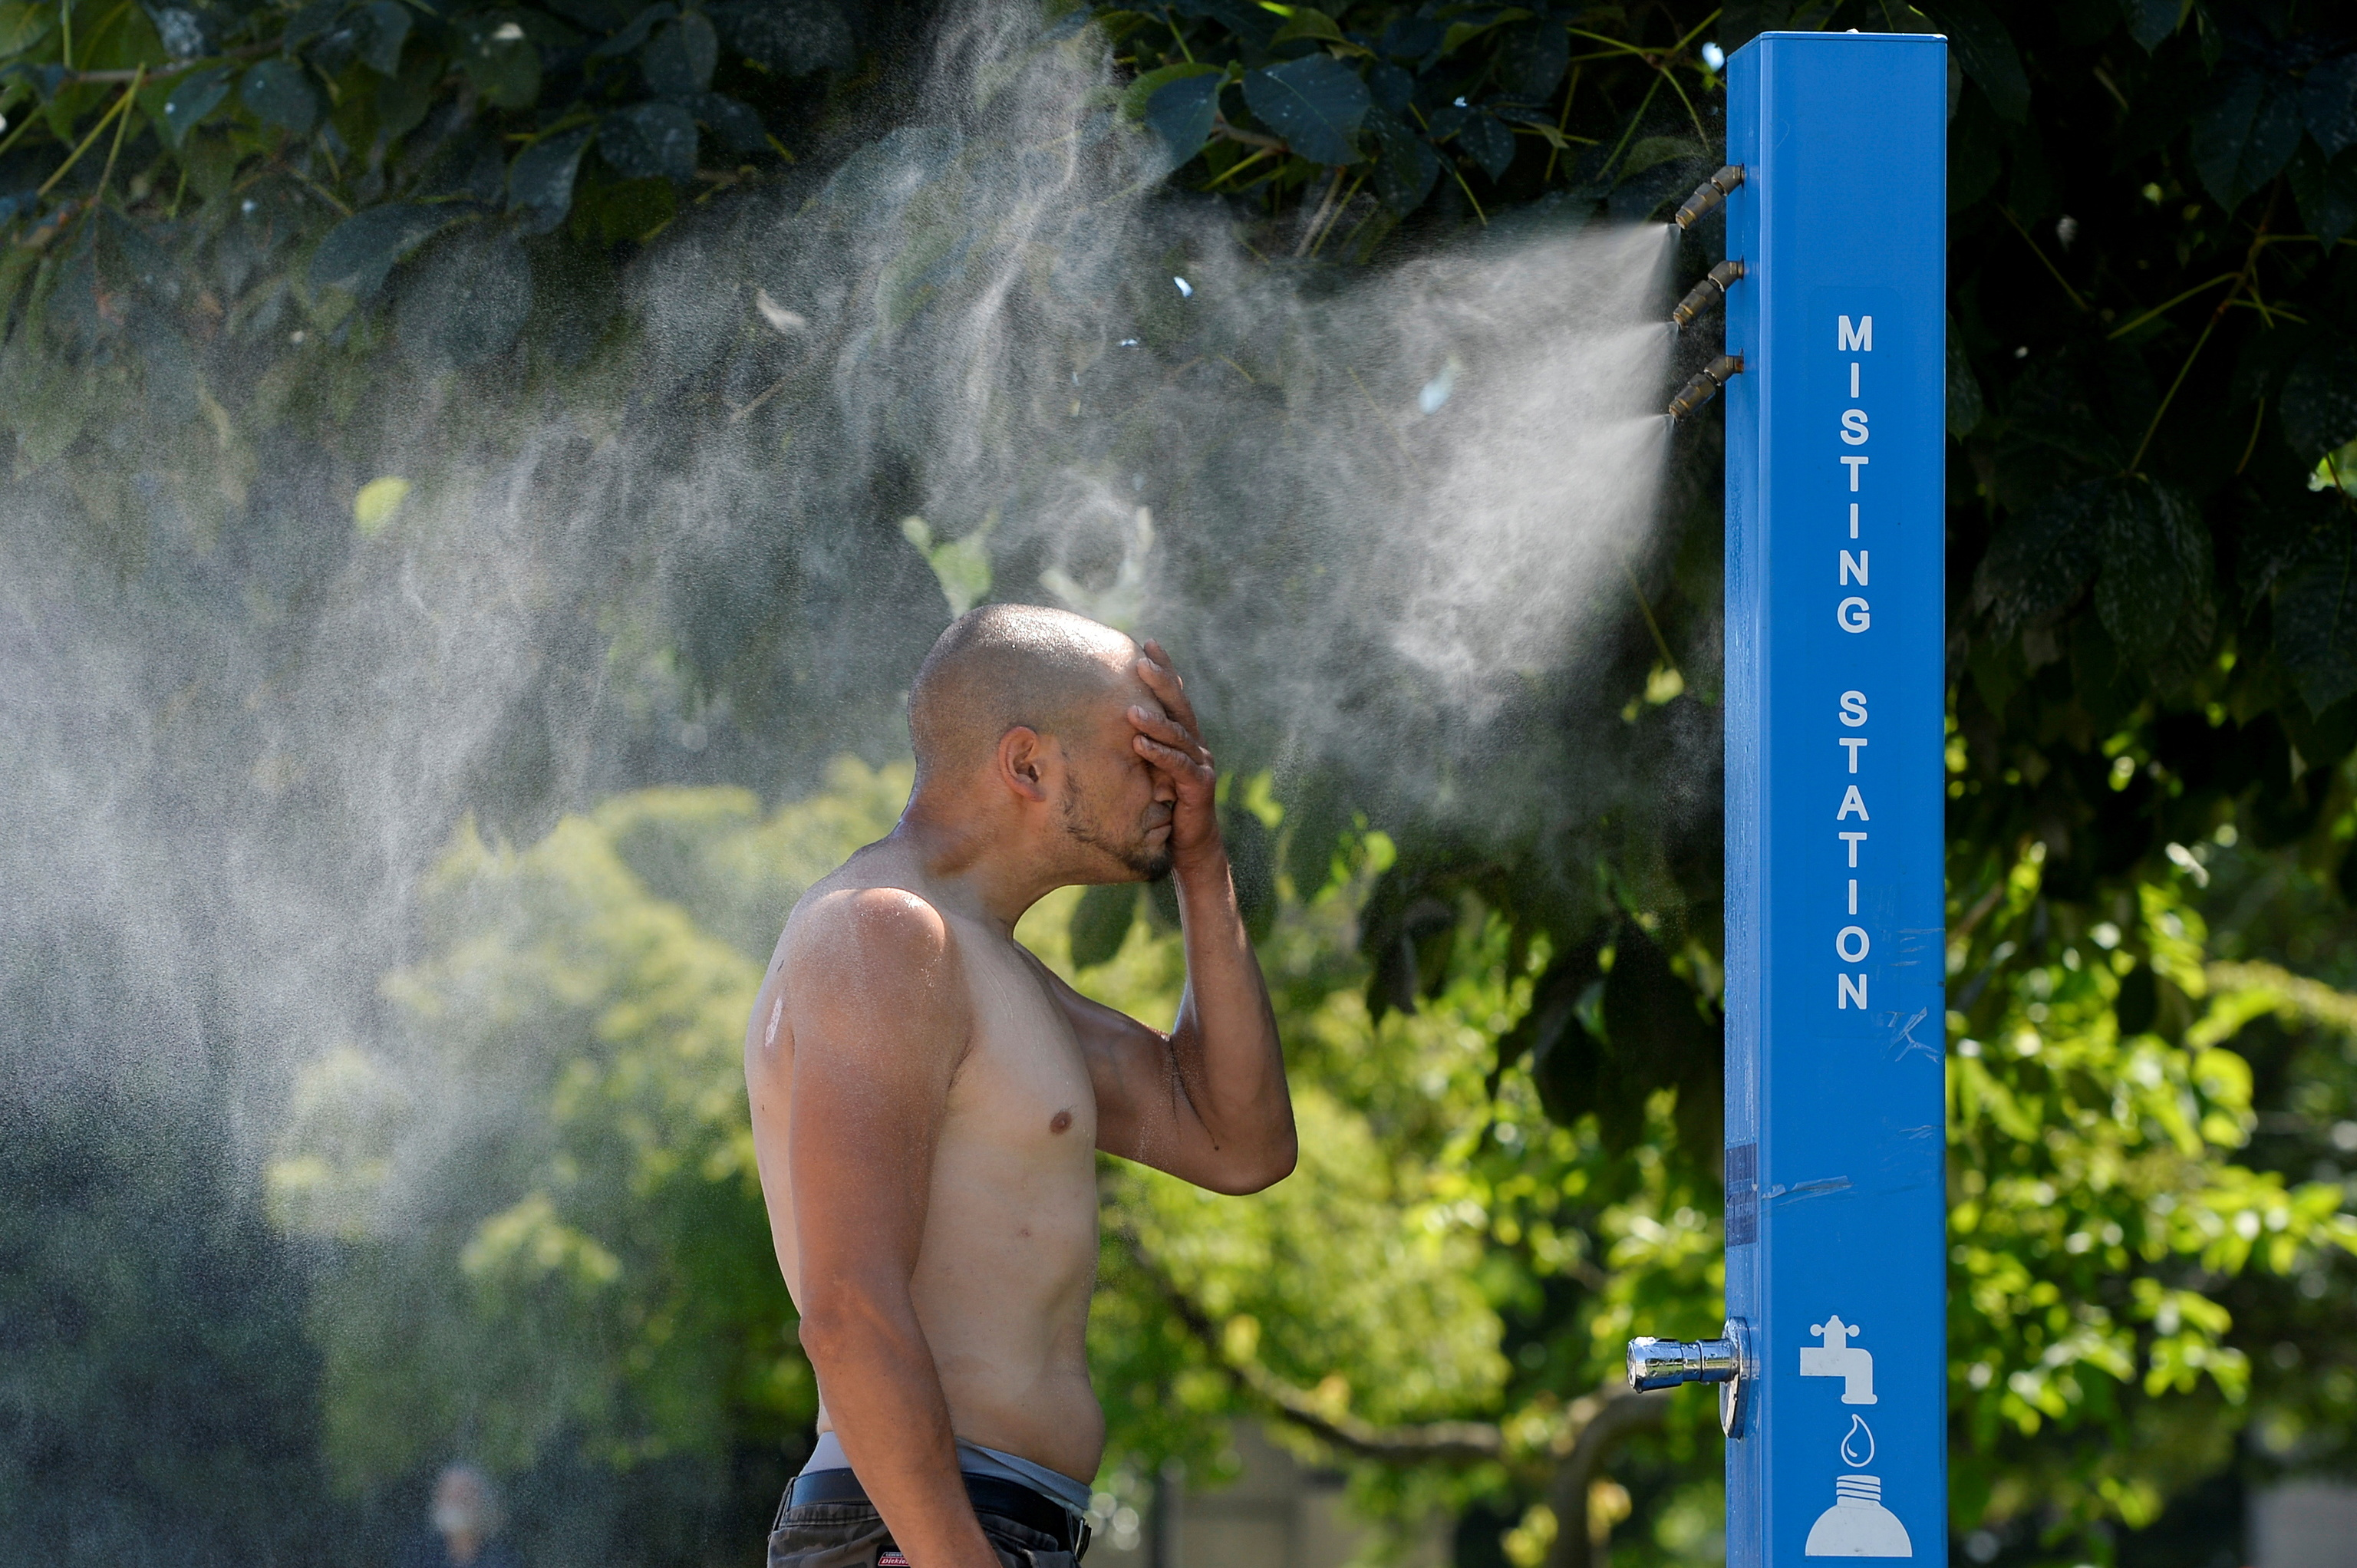 A man uses a fountain to cool off in Vancouver.